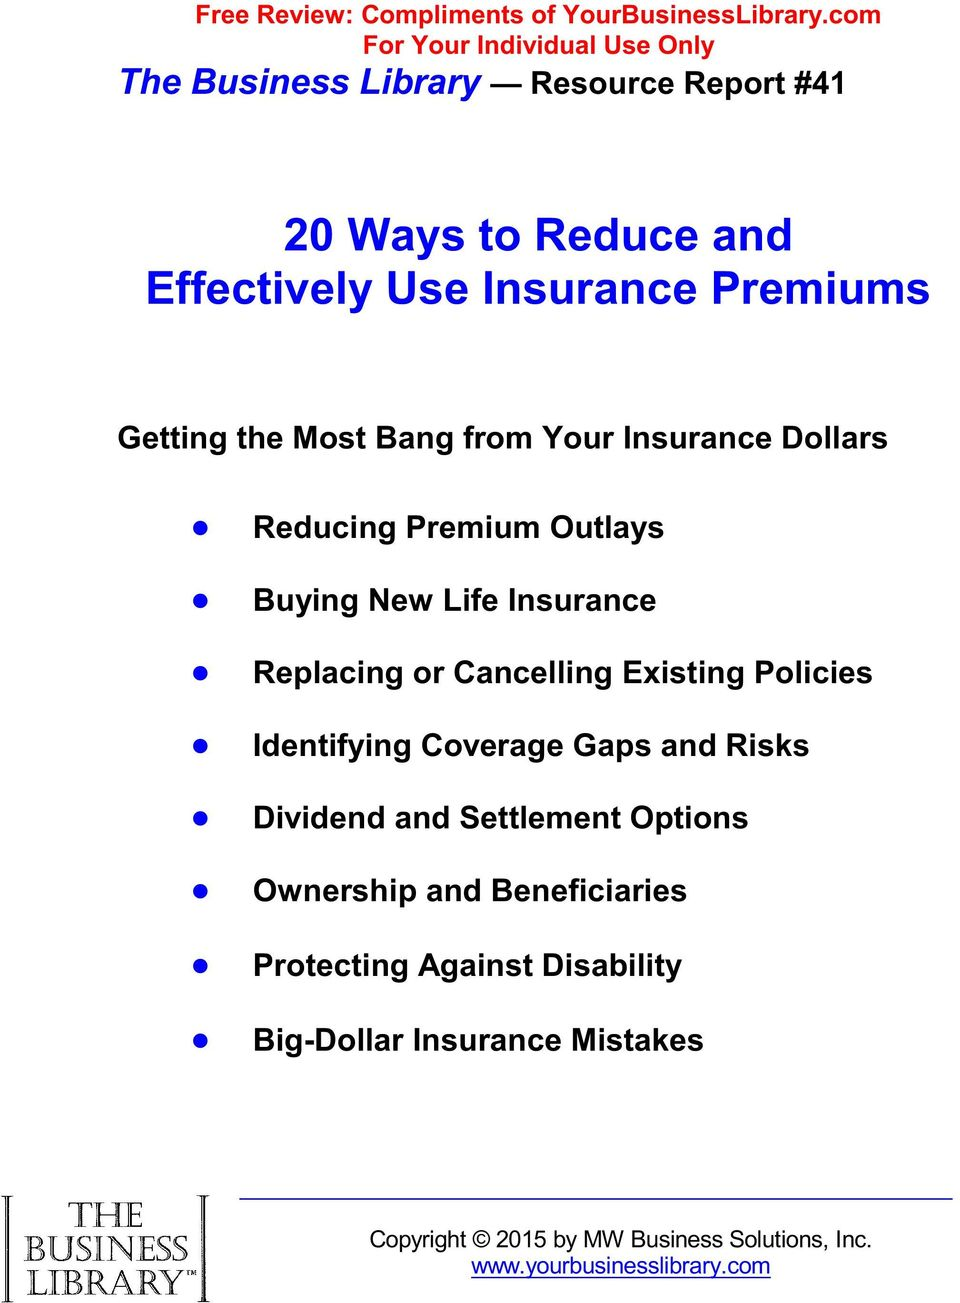 Getting the Most Bang from Your Insurance Dollars Reducing Premium Outlays Buying New Life Insurance Replacing or Cancelling Existing